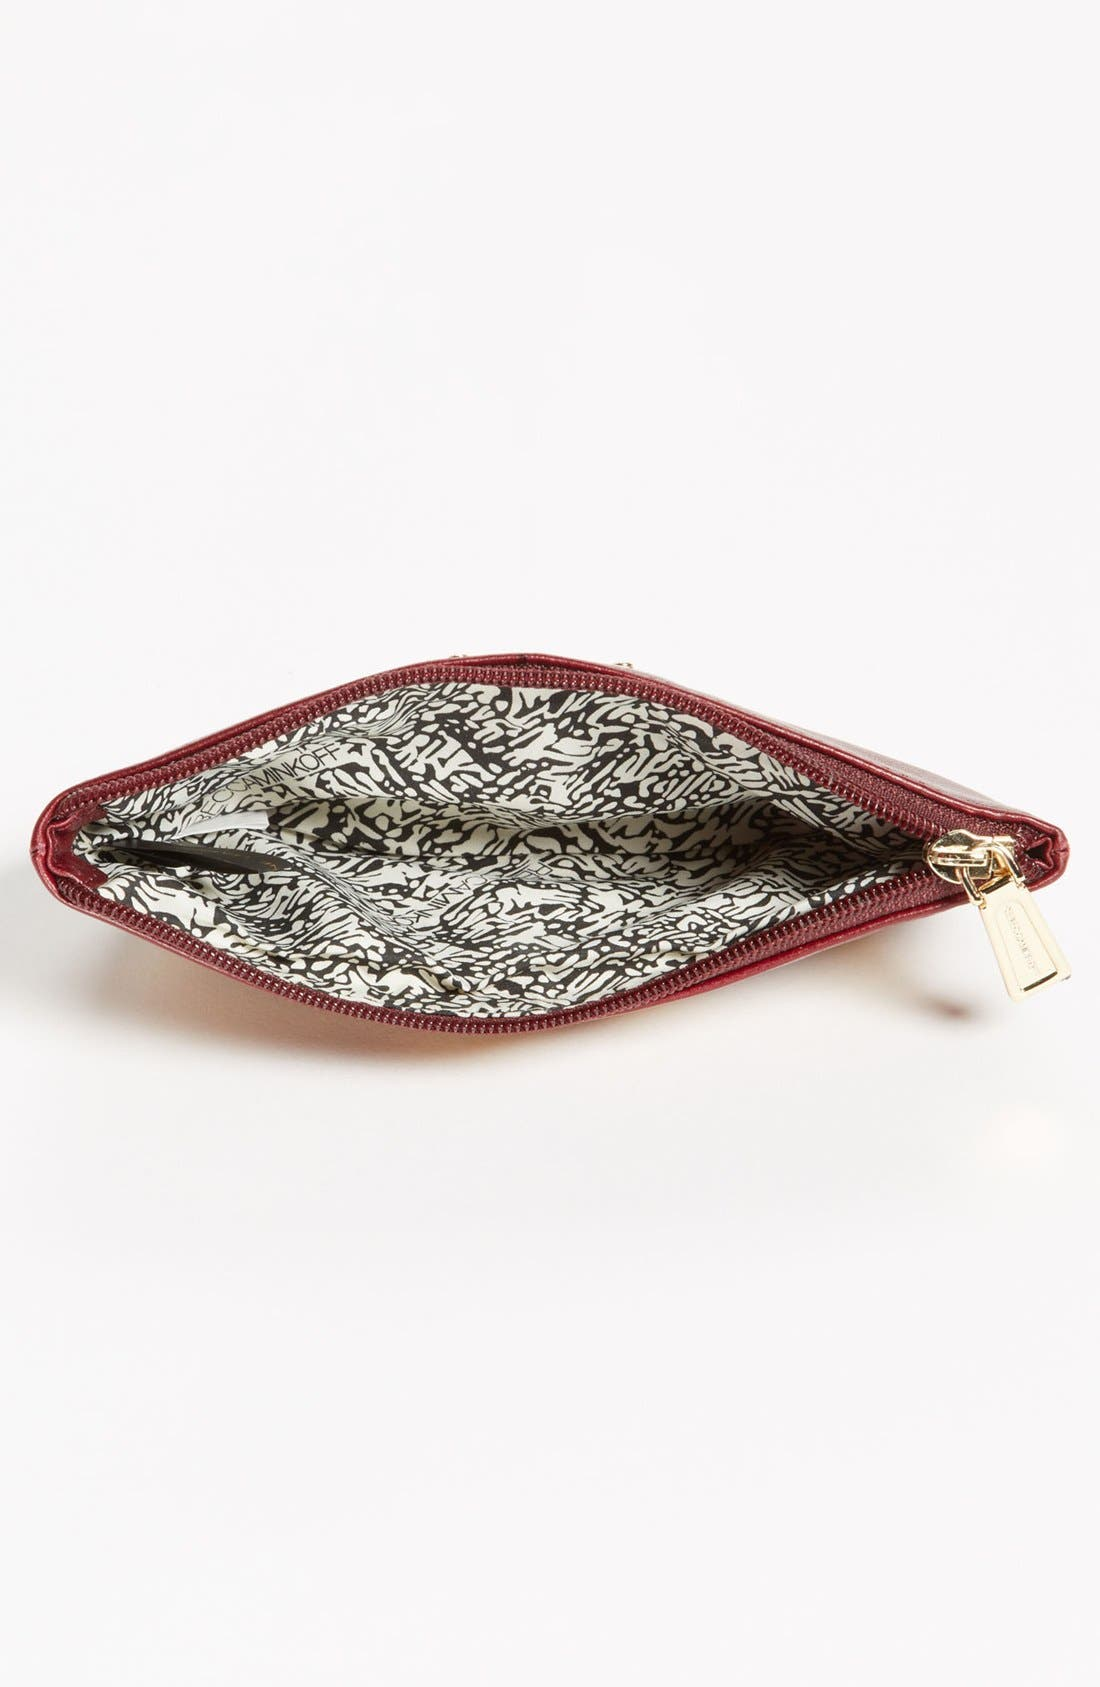 Alternate Image 3  - Rebecca Minkoff 'Nordy Girl' Leather Sunglasses Case